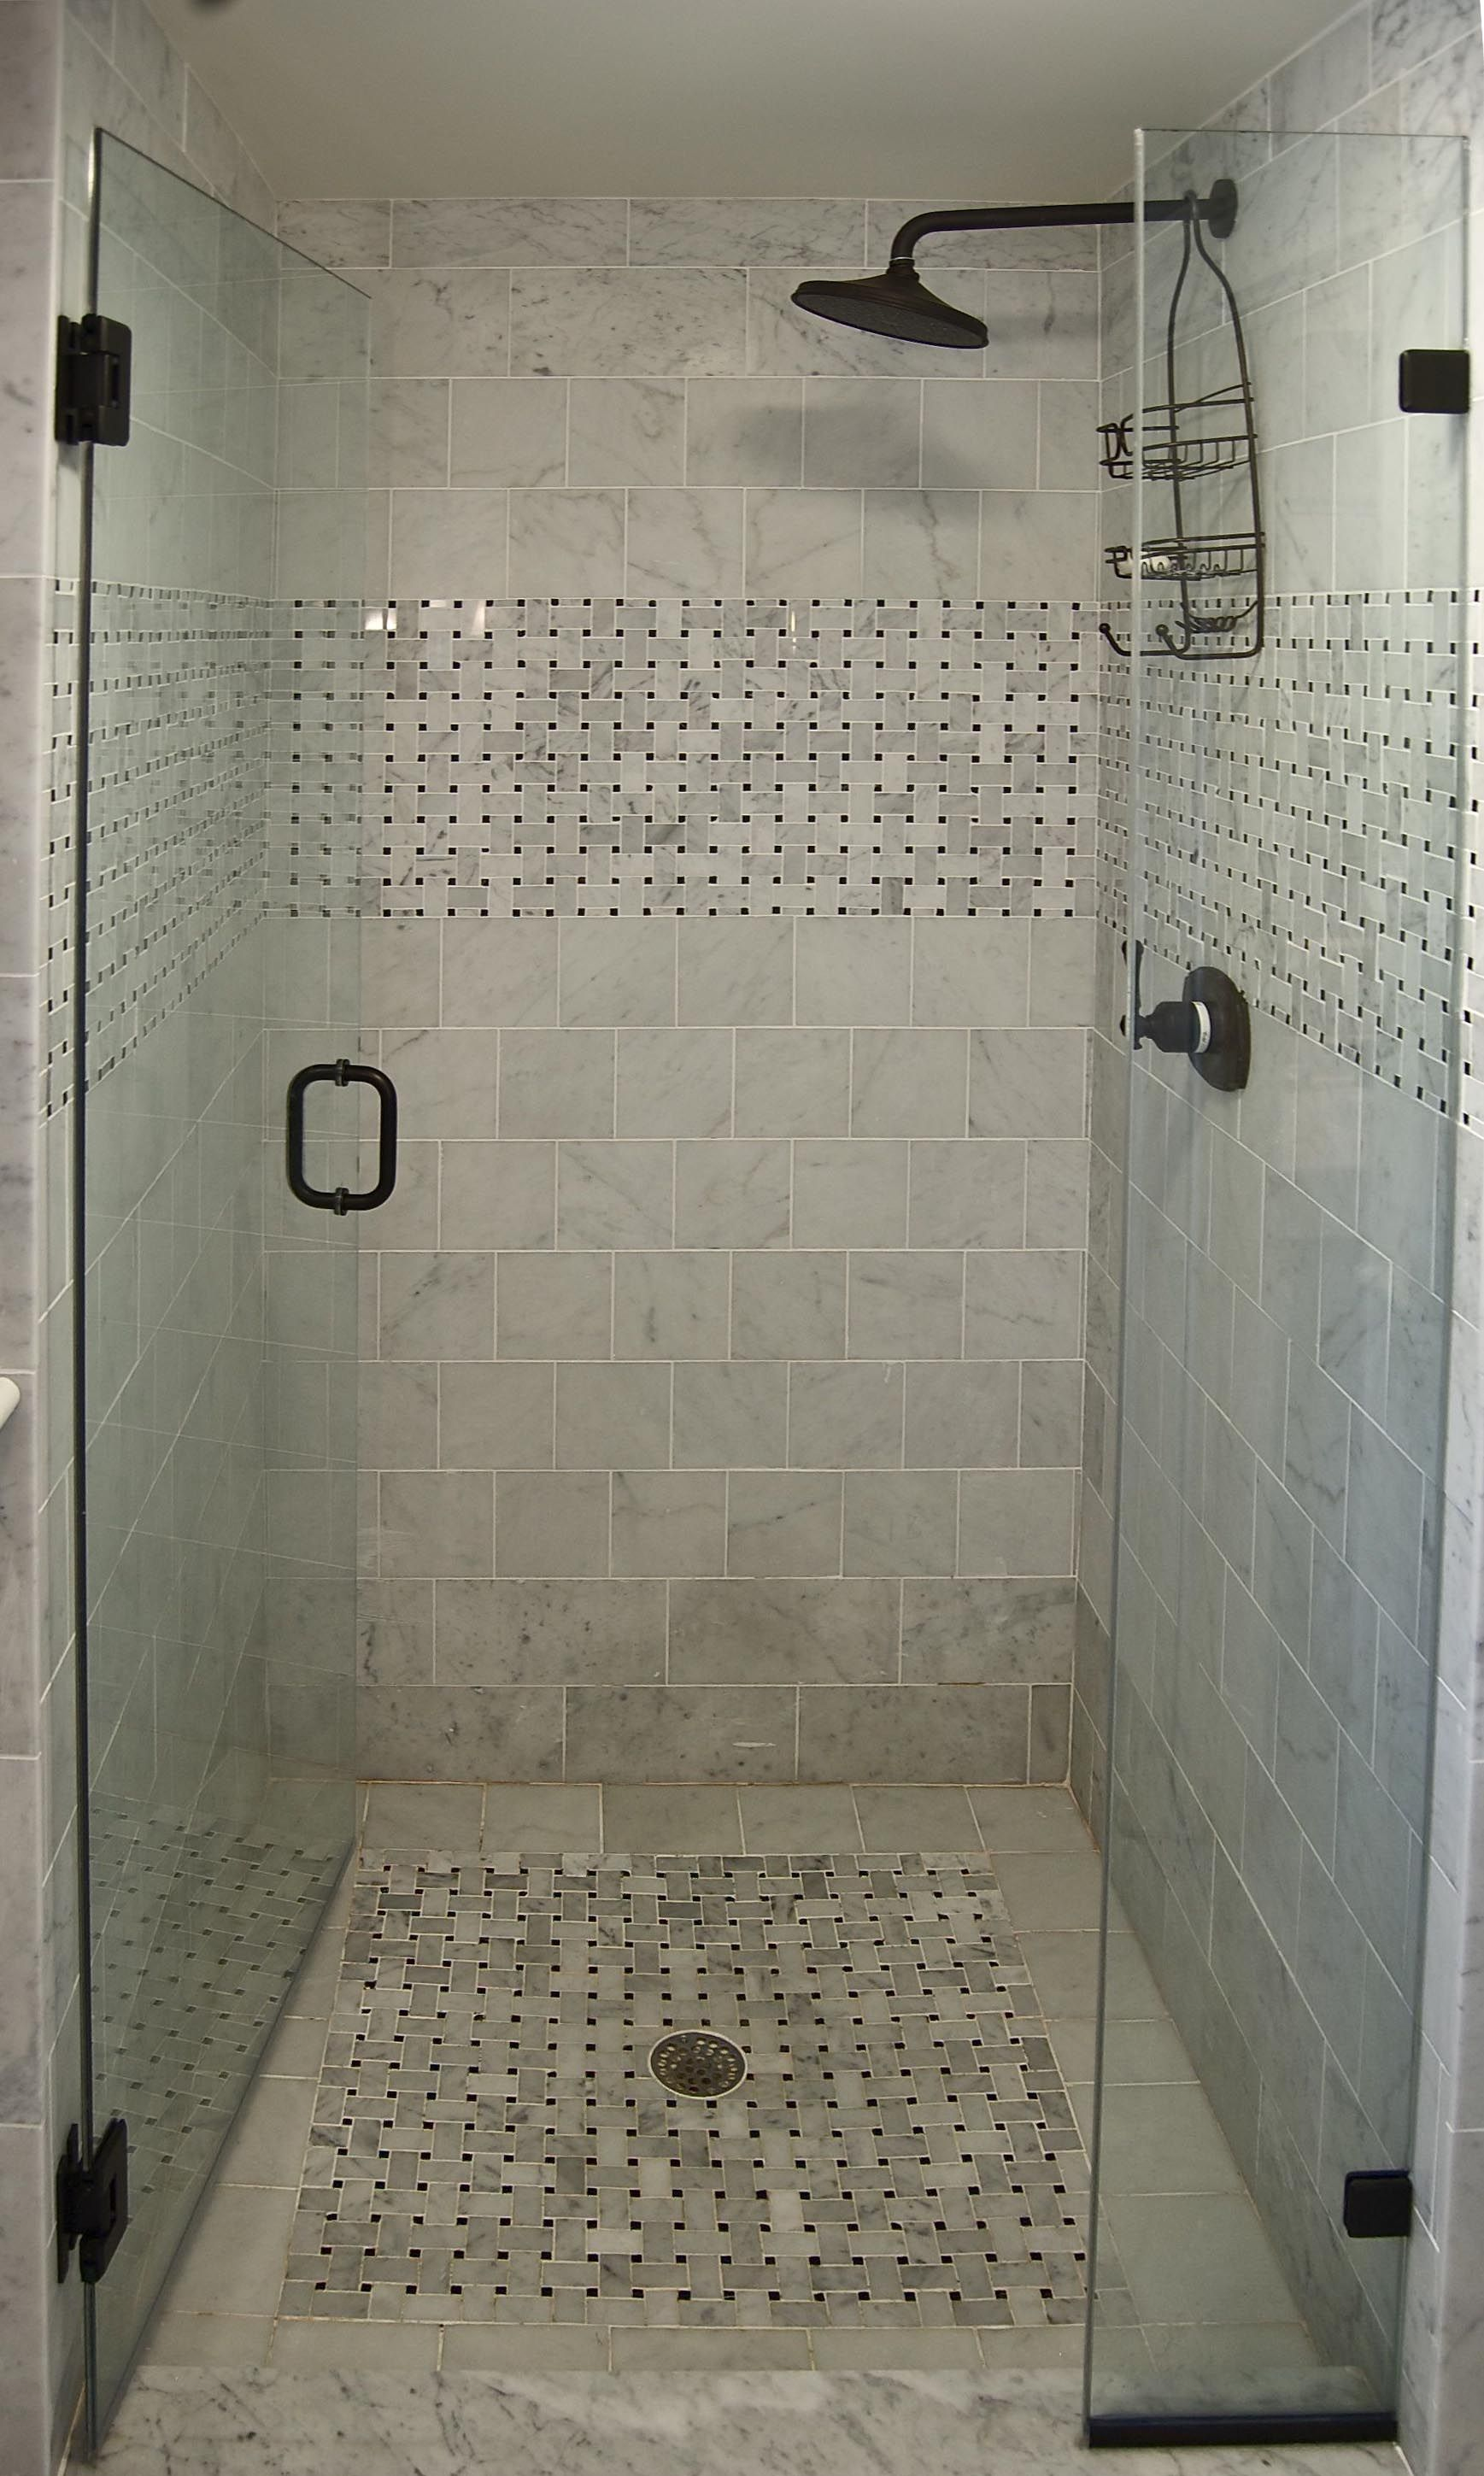 You Have To Keep The Shower Tiles Clean To Prevent Grout. In Fact, Grout Is  A Serious Problem And It Might Disturb The Beauty Of The Tile.